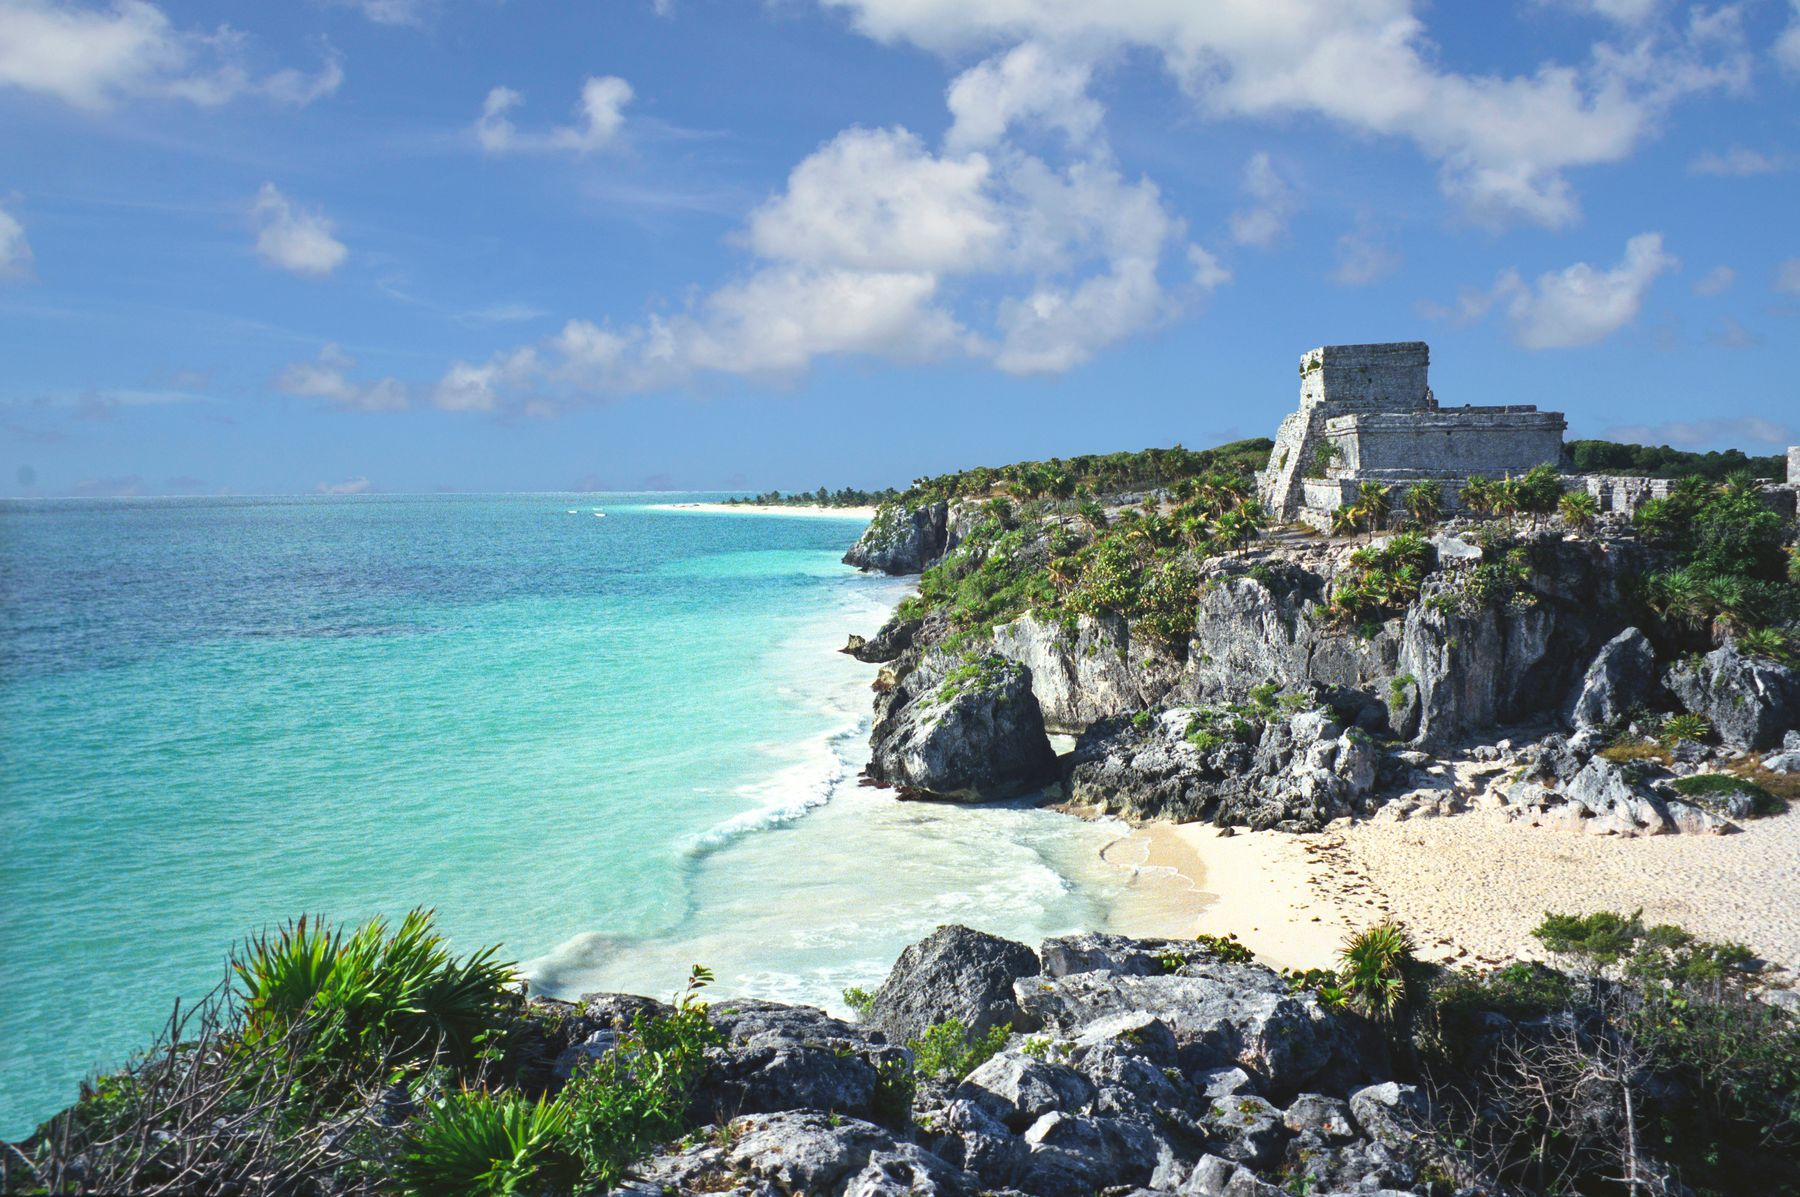 Mayan ruins overlooking the turquoise waters and a quiet beach in Tulum, Mexico